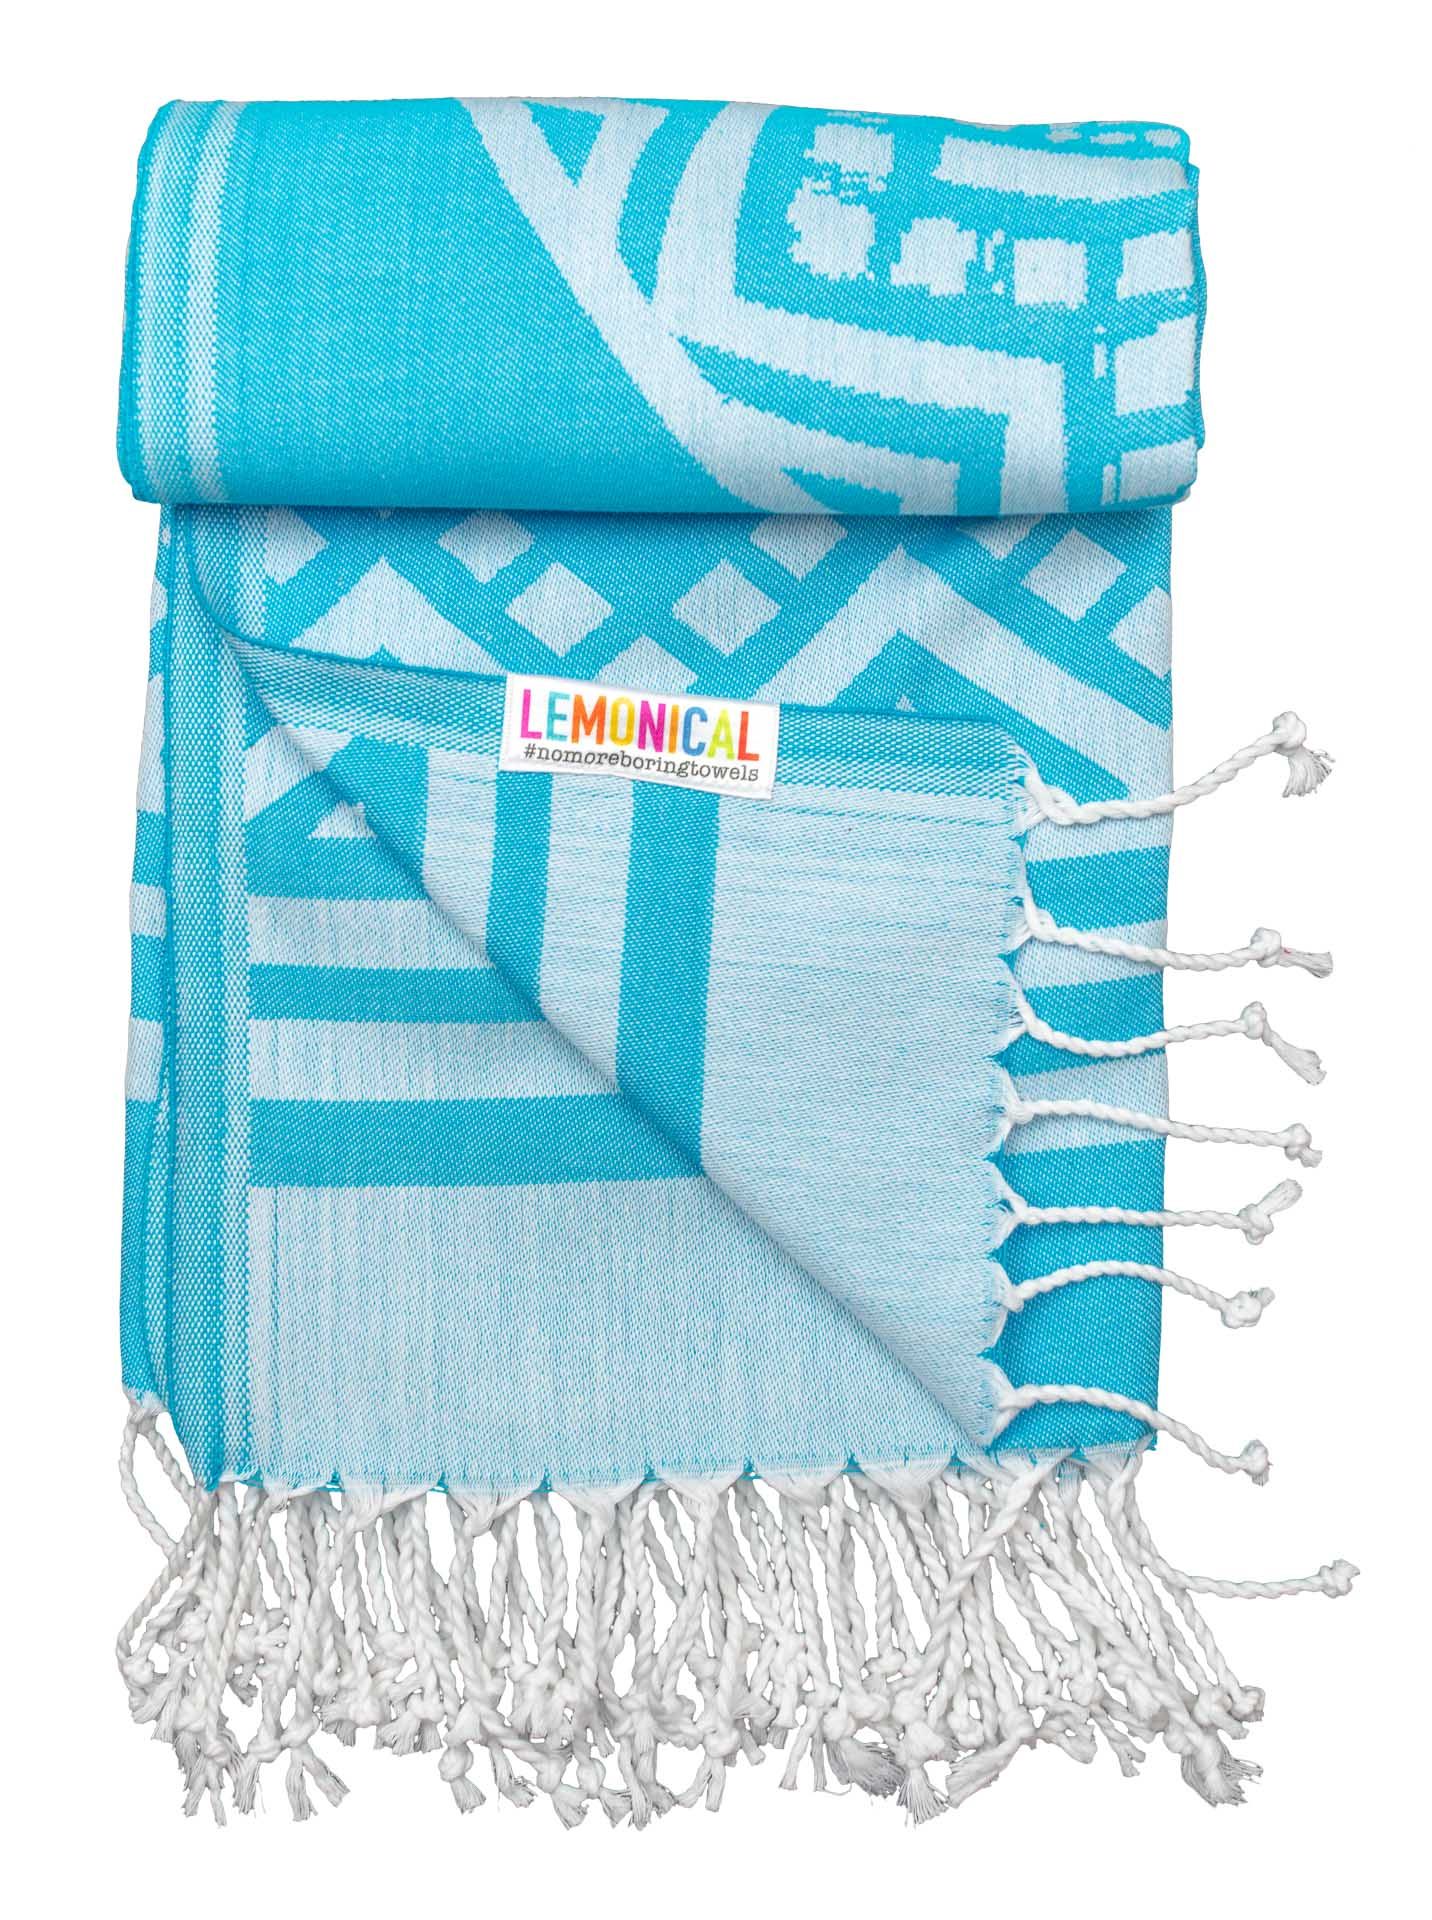 BLUE-ELEPHANT-Towel-Lemonical-4